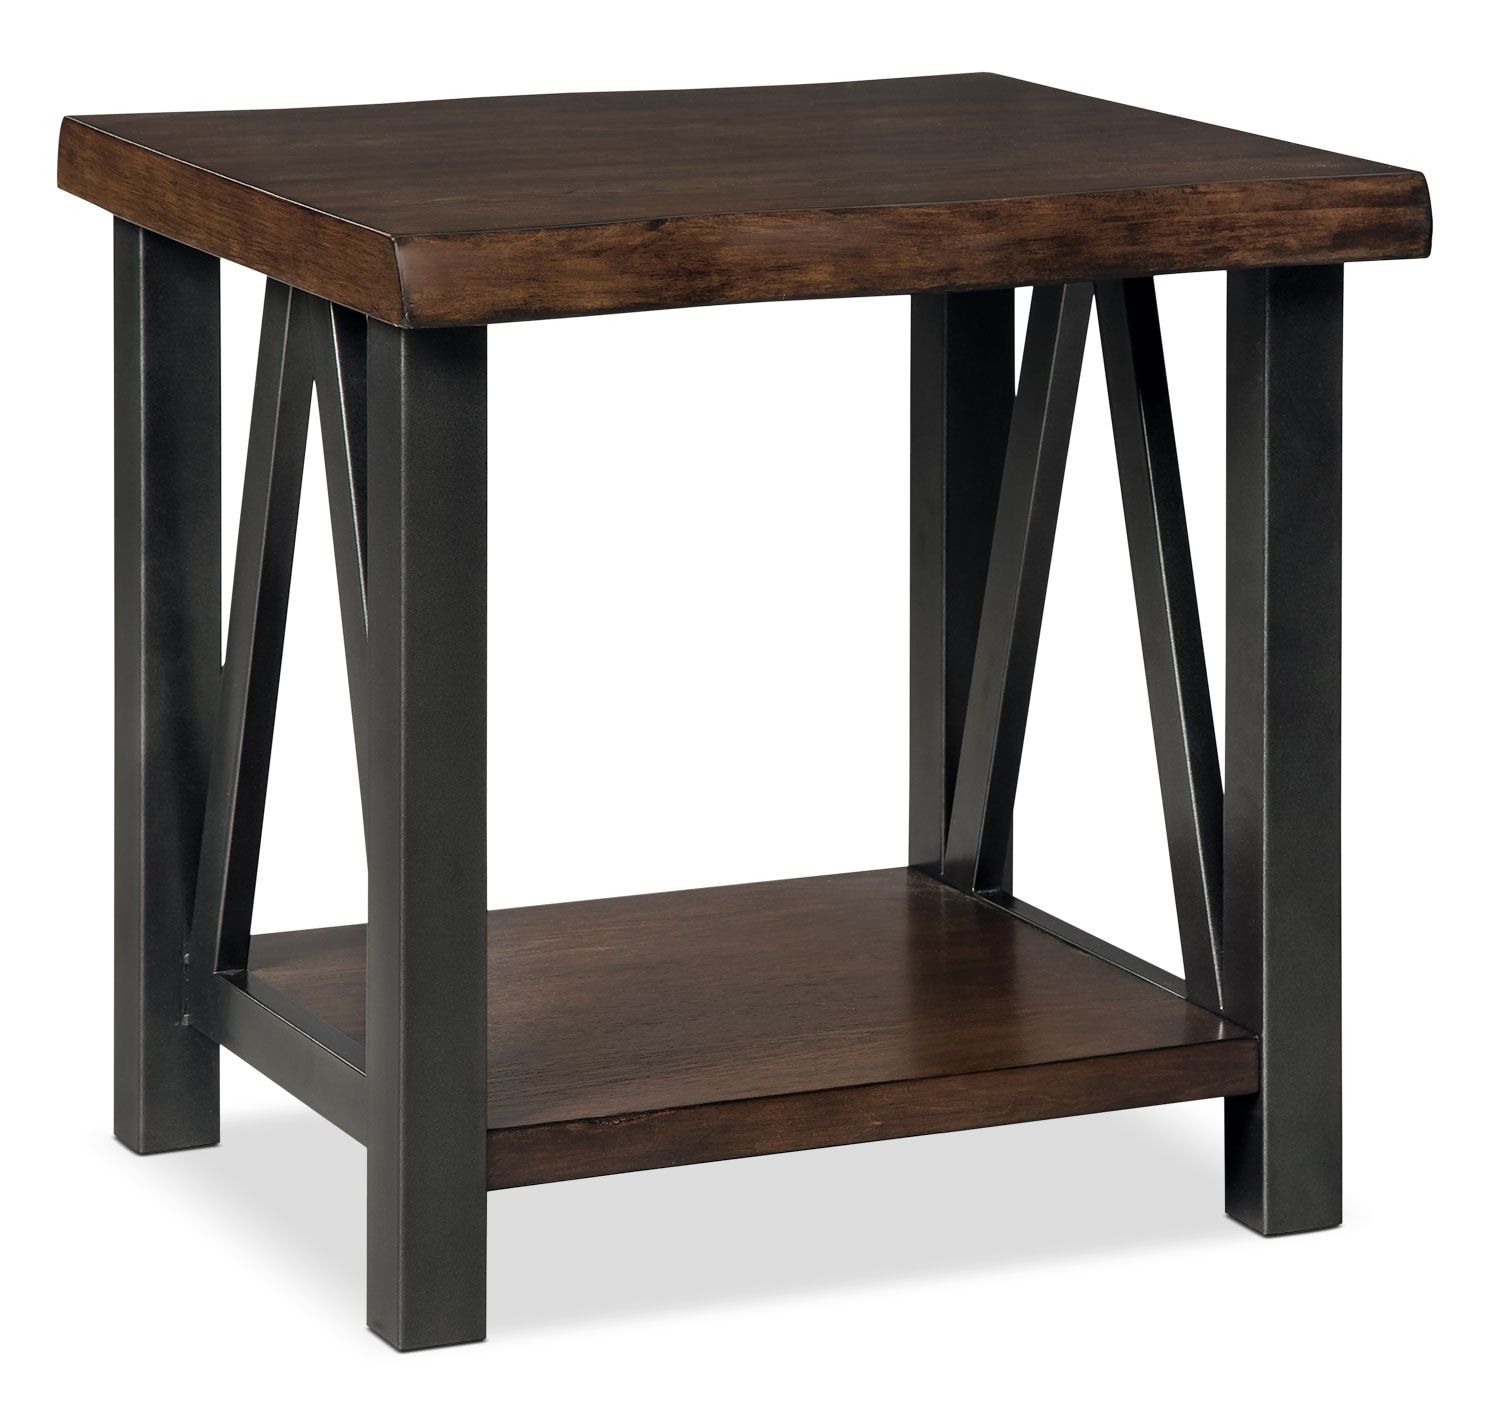 Esmarina End Table